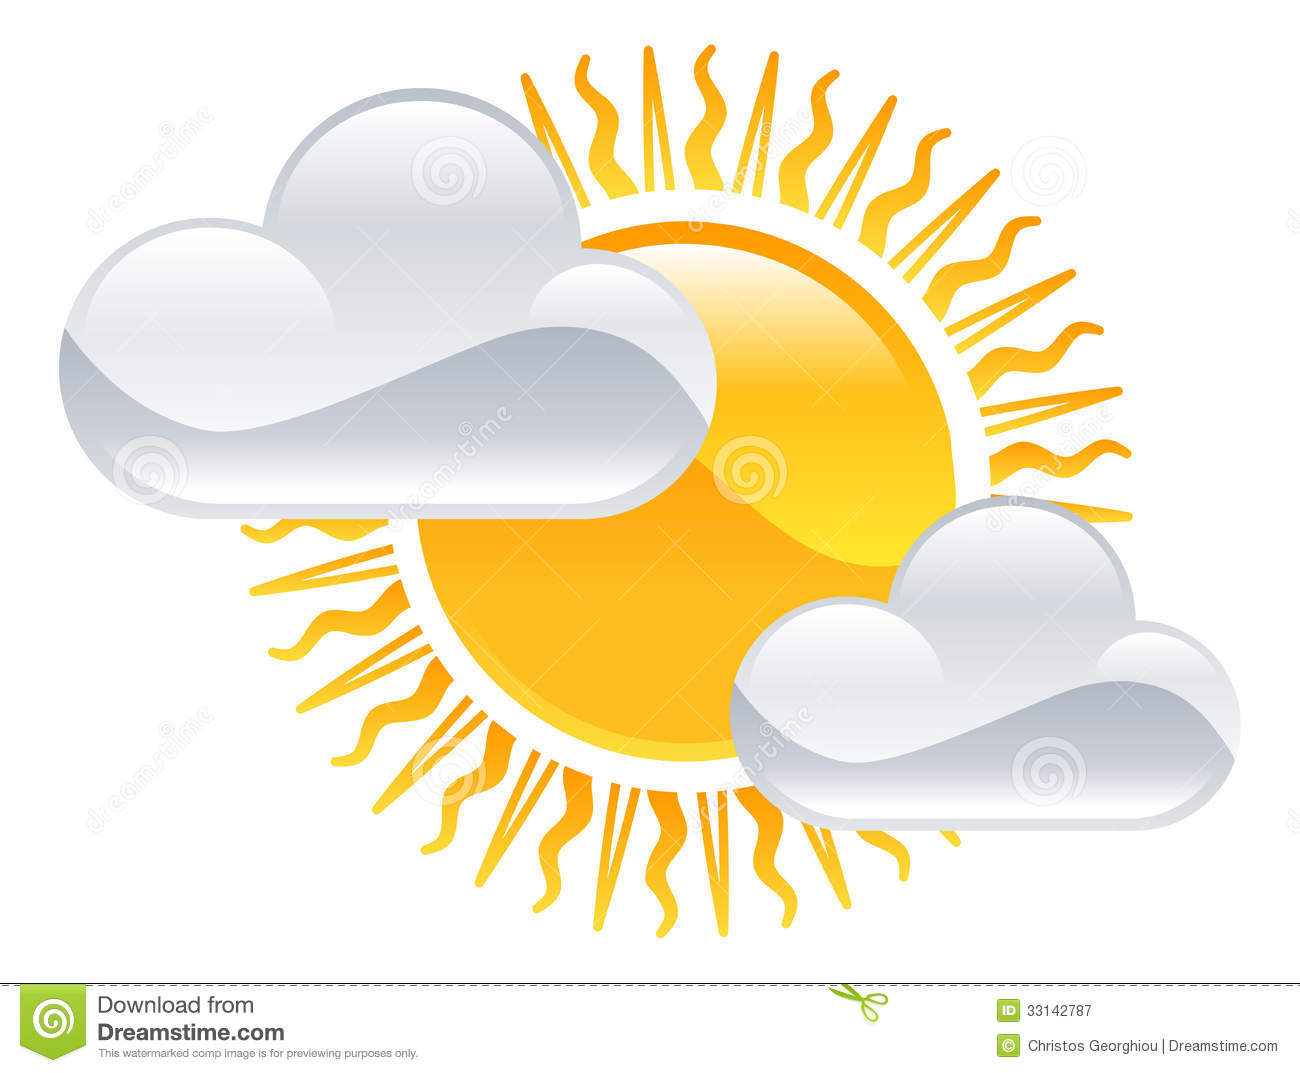 Sun And Clouds Icon Royalty Free Stock Photography - Image: 33142787